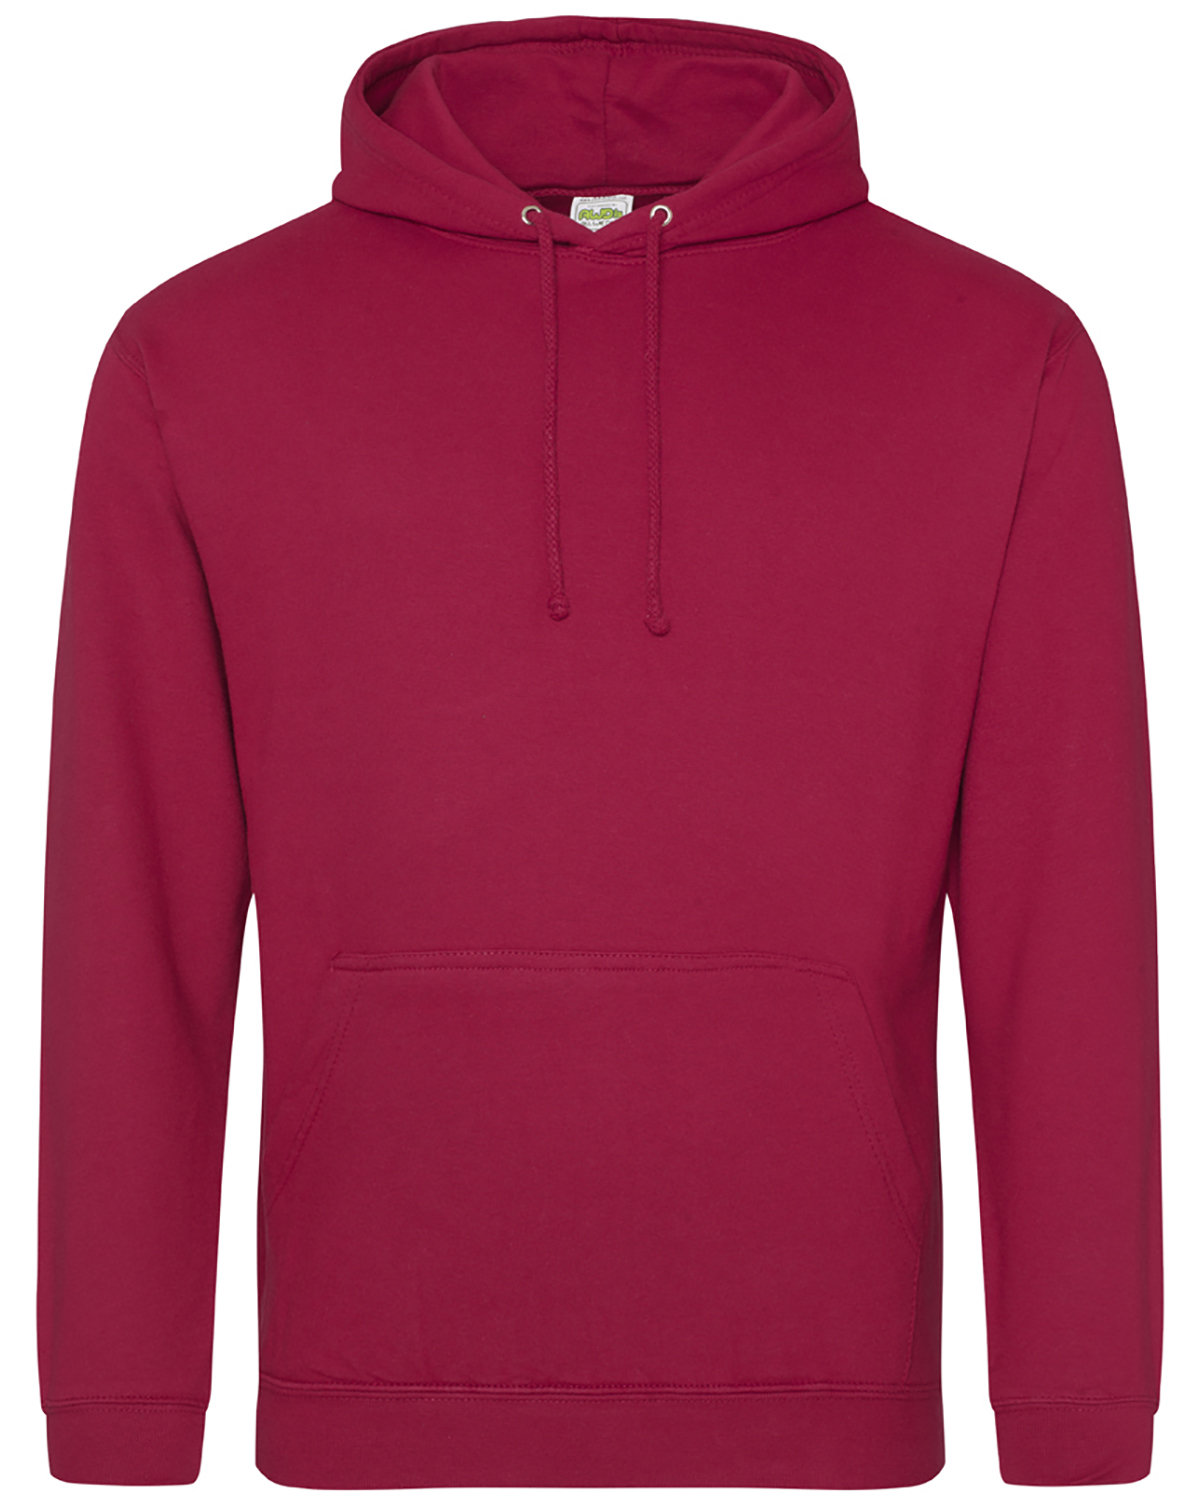 Just Hoods By AWDis Men's 80/20 Midweight College Hooded Sweatshirt RED HOT CHILLI